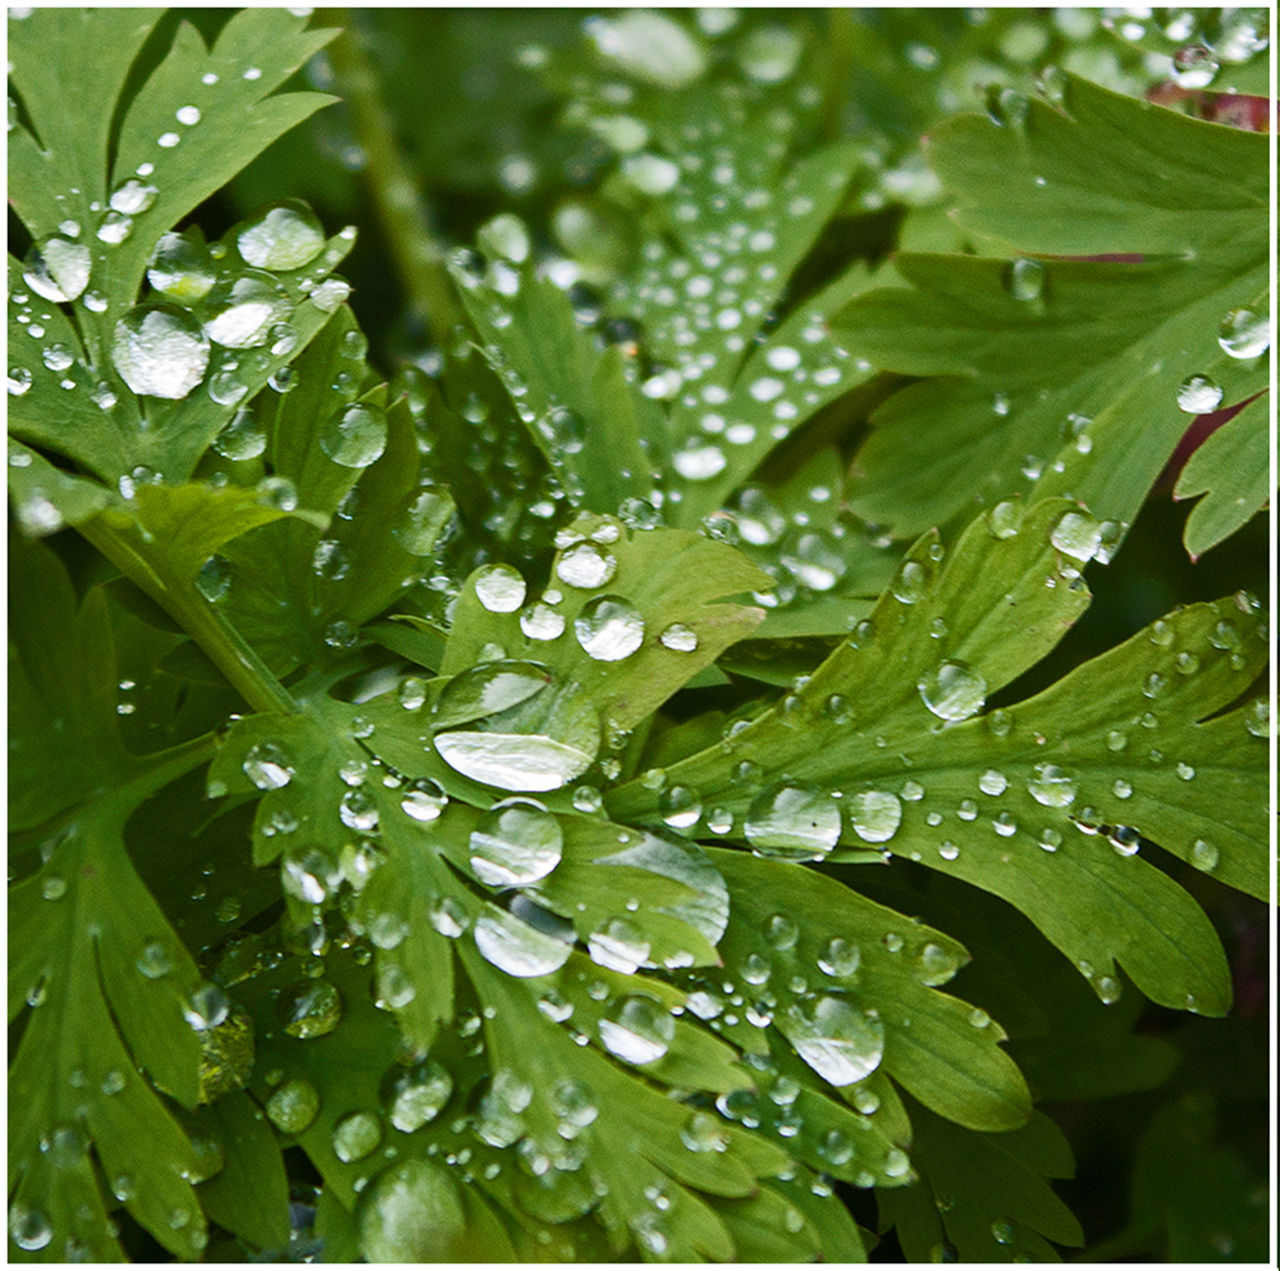 drop, water, leaf, wet, nature, green color, raindrop, freshness, droplet, growth, close-up, no people, backgrounds, full frame, day, beauty in nature, plant, outdoors, fragility